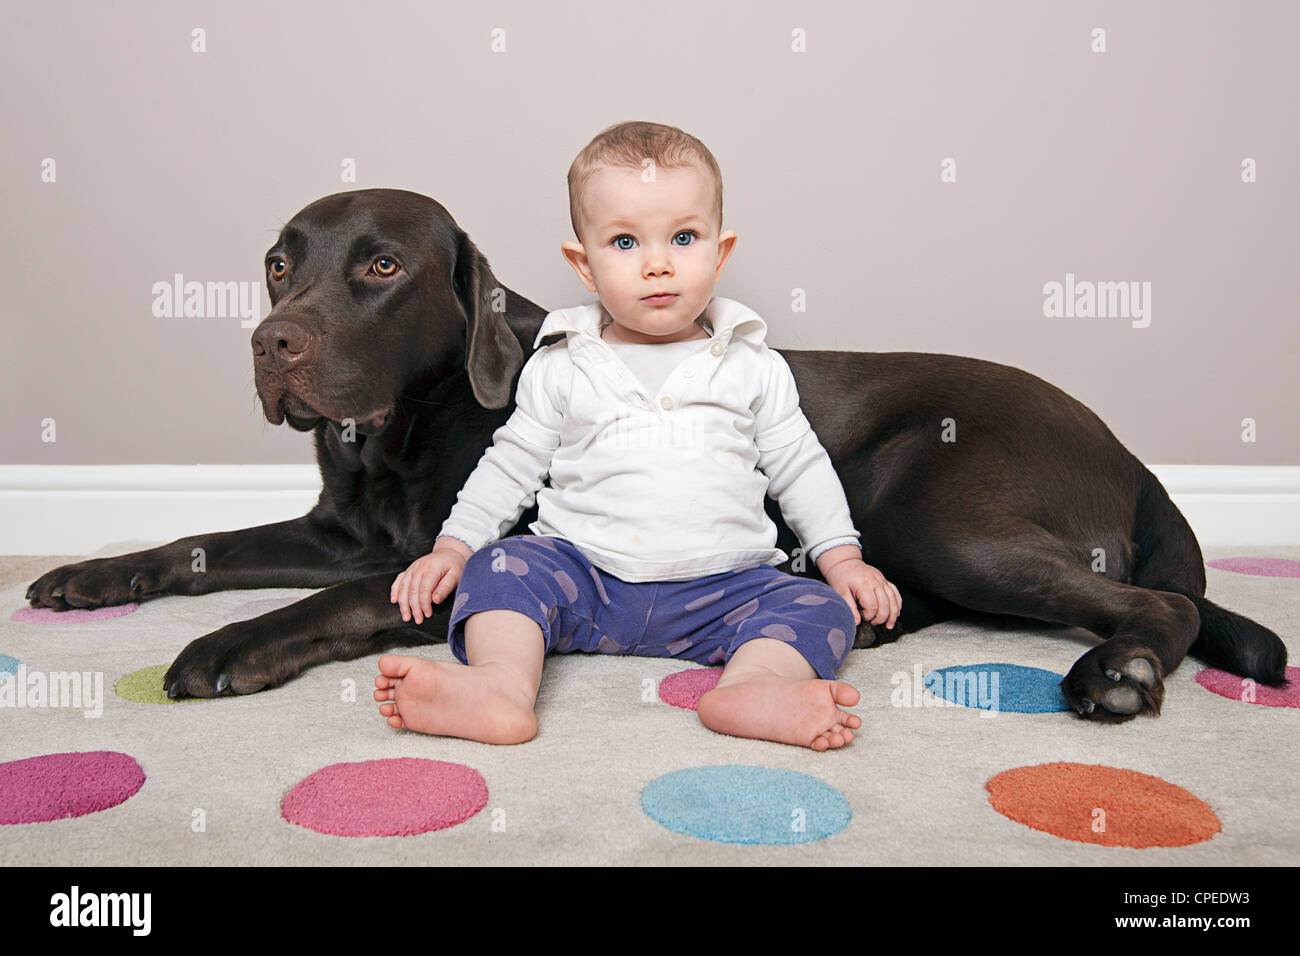 Cute Baby With Her Chocolate Labrador Pet Stock Photo Alamy